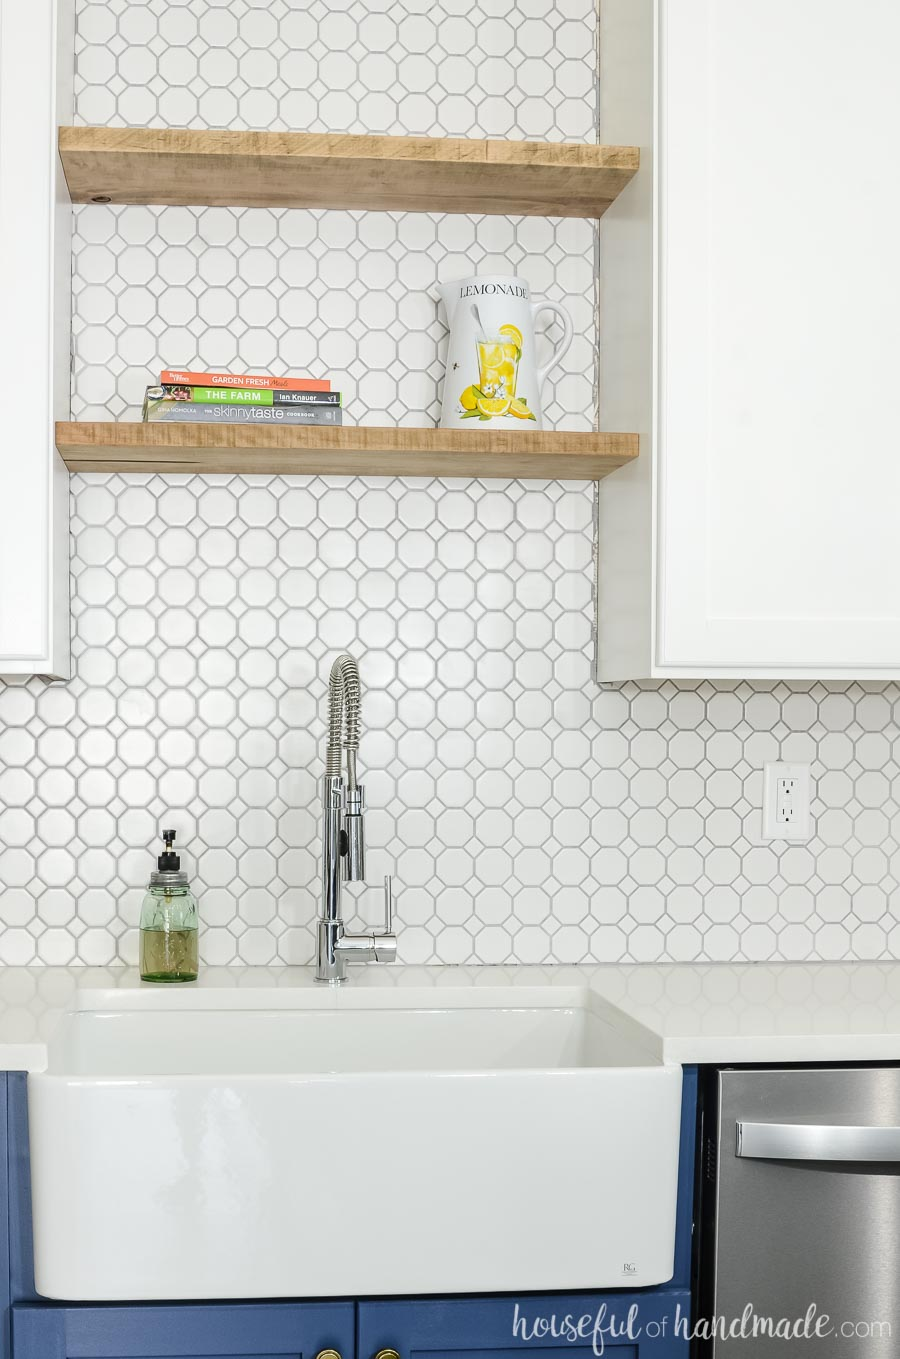 Thick maple boards were turned into floating shelves above the kitchen sink. White octagon tile is the perfect backsplash to fill the space behind it. Housefulofhandmade.com